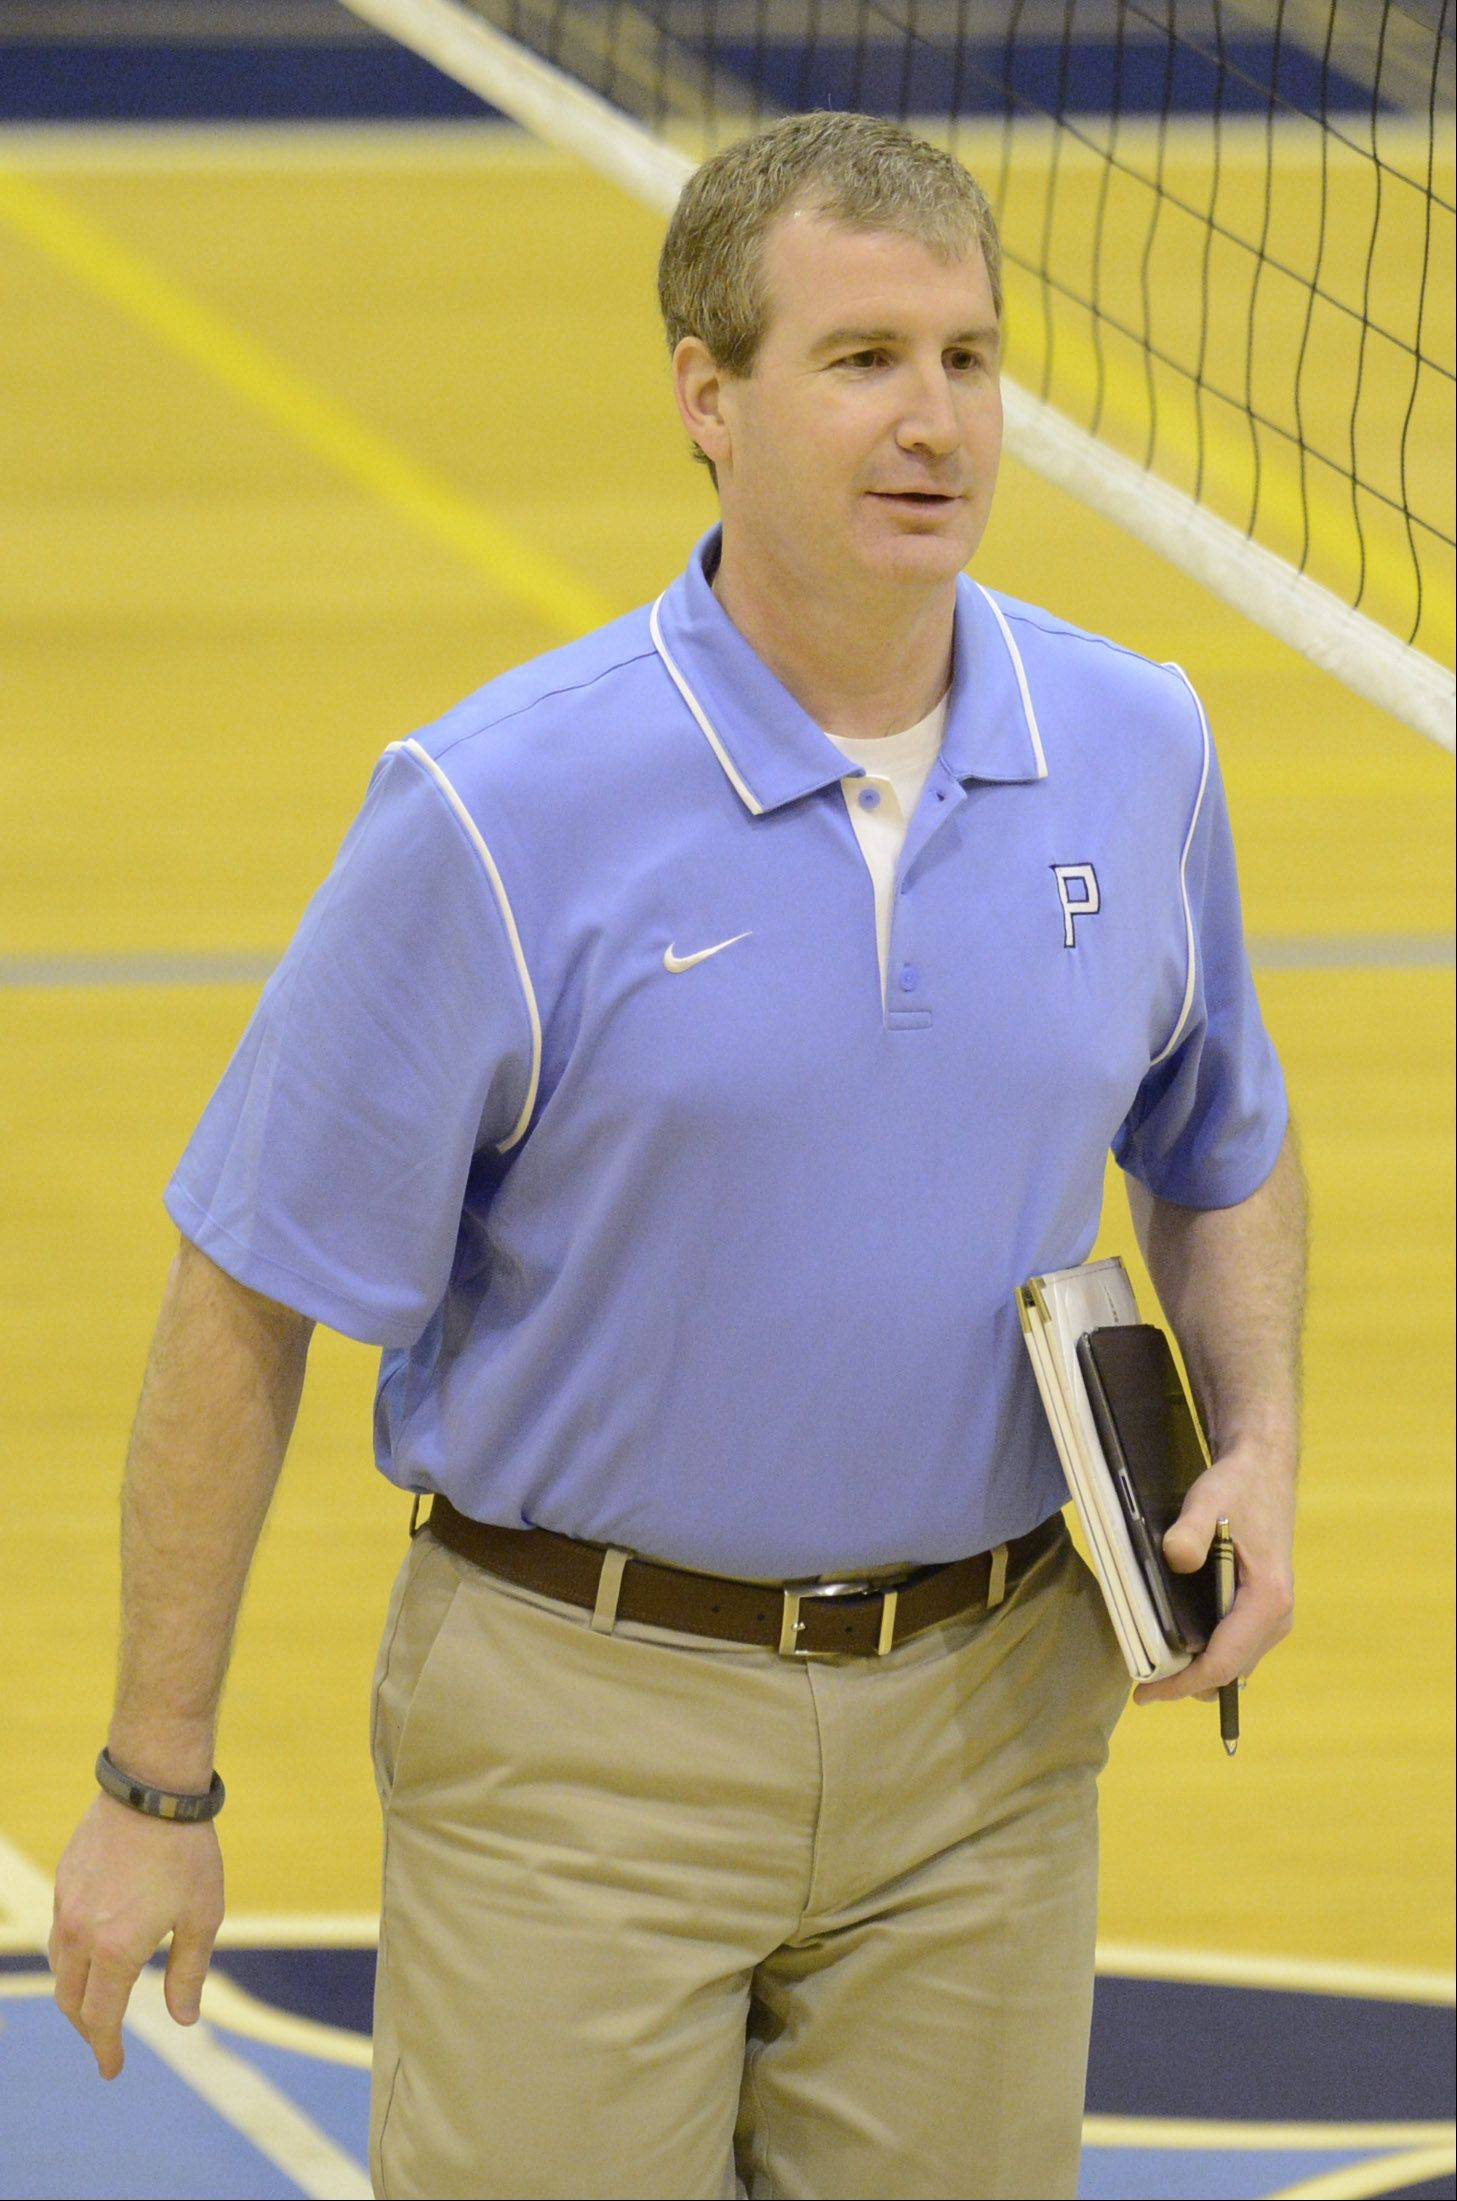 Prospect boys volleyball coach Mike Riedy.